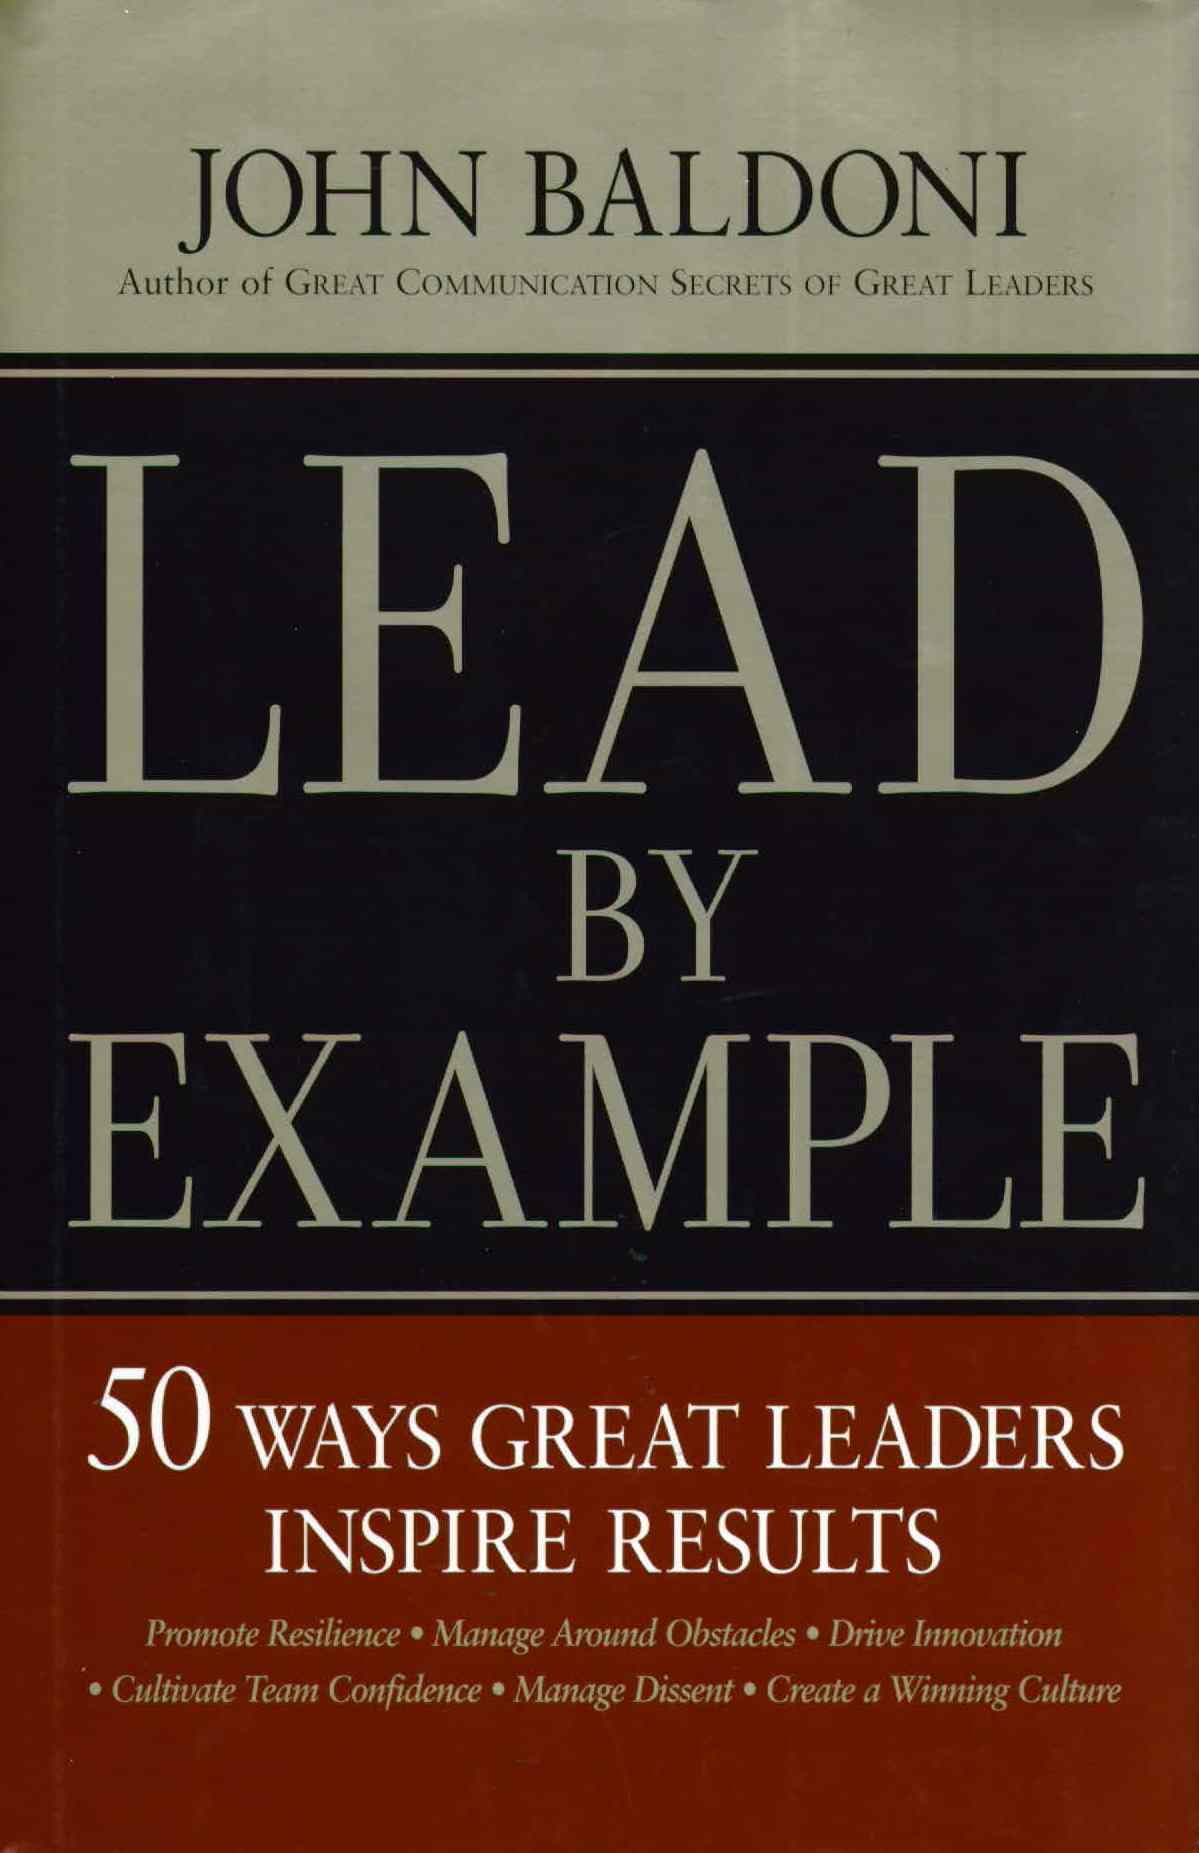 new book summary available for lead by example | business book summaries